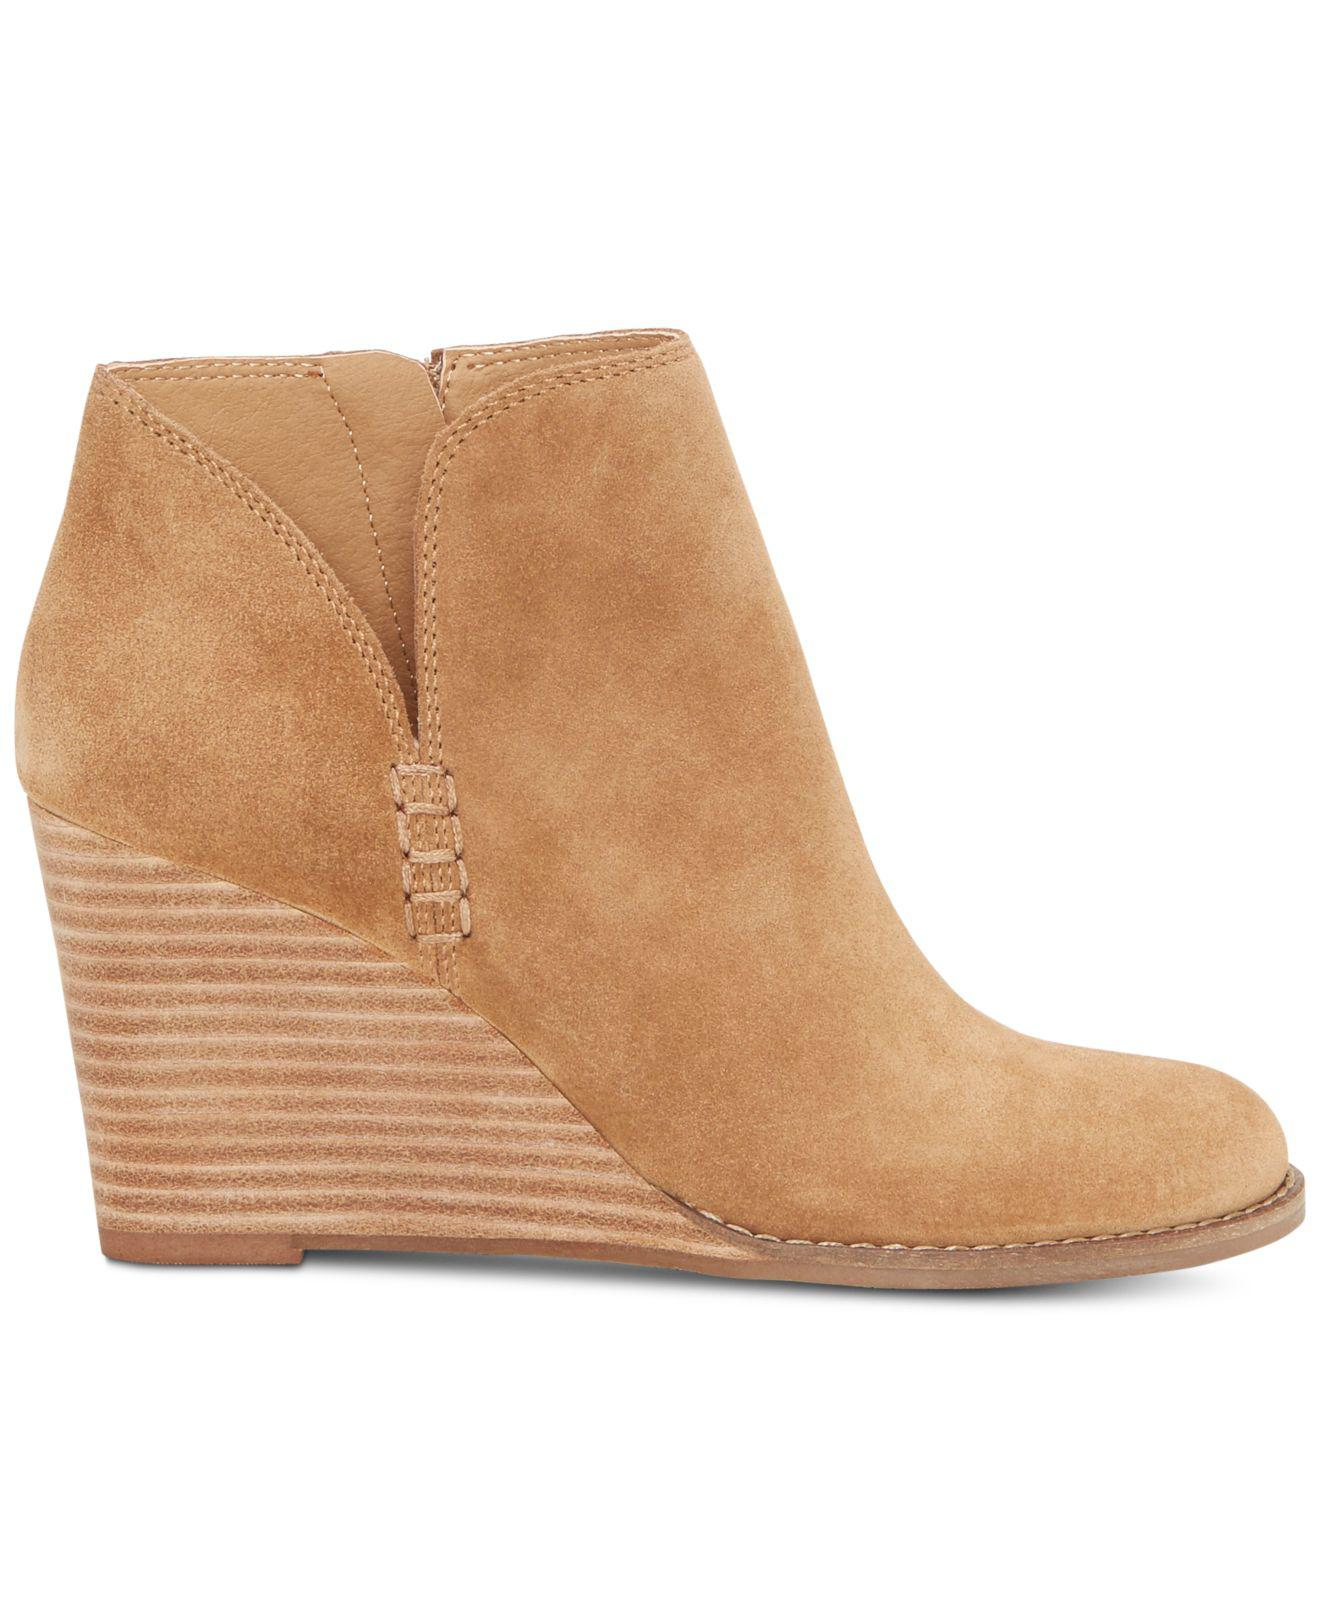 df92fc916aab Lyst - Lucky Brand Yimme Wedge Bootie in Brown - Save 24%